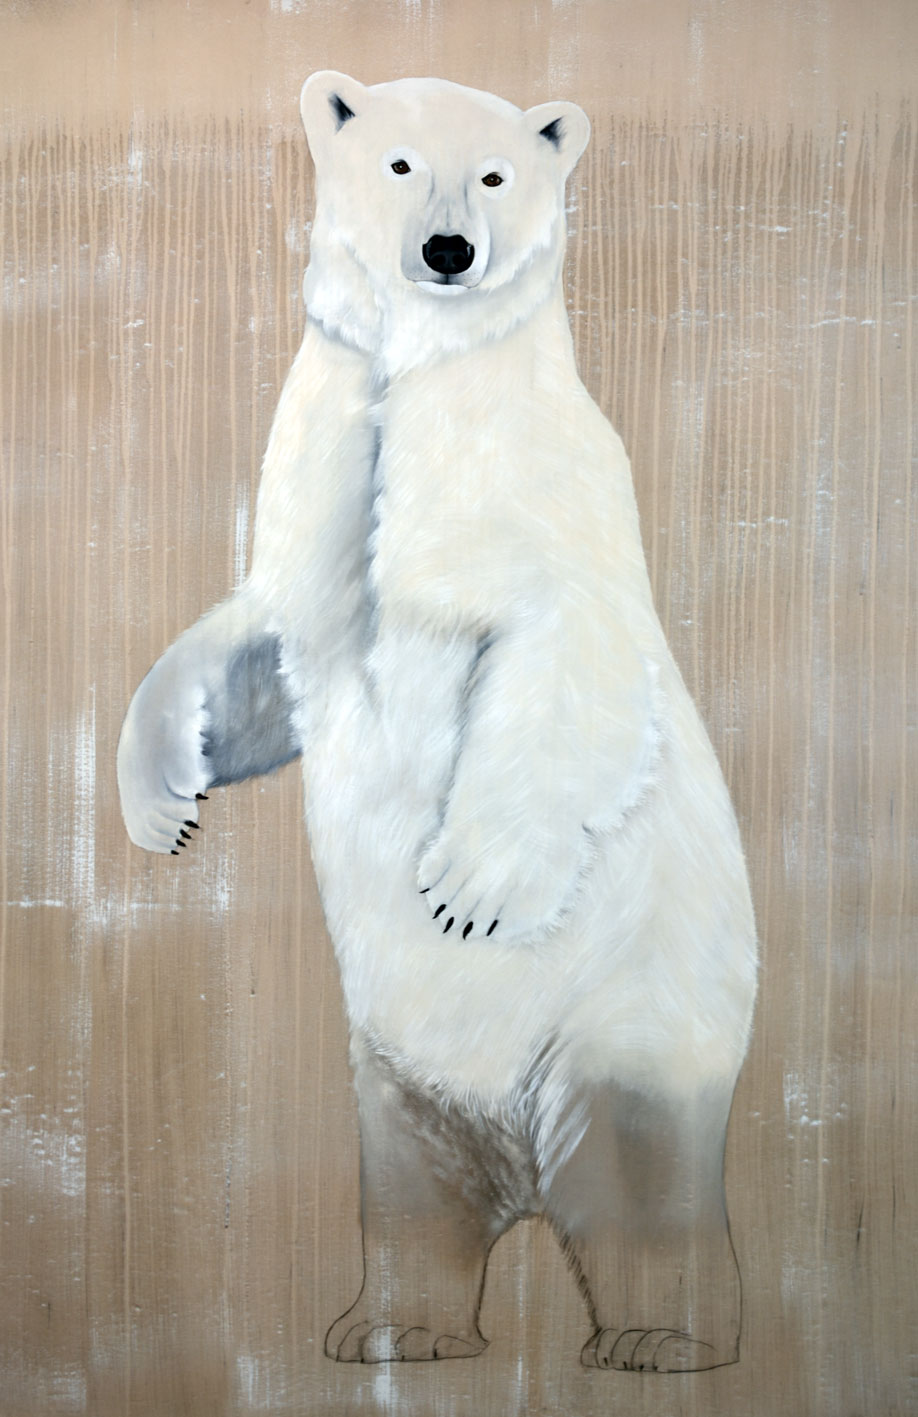 URSUS MARITIMUS divers Thierry Bisch Contemporary painter animals painting art decoration nature biodiversity conservation